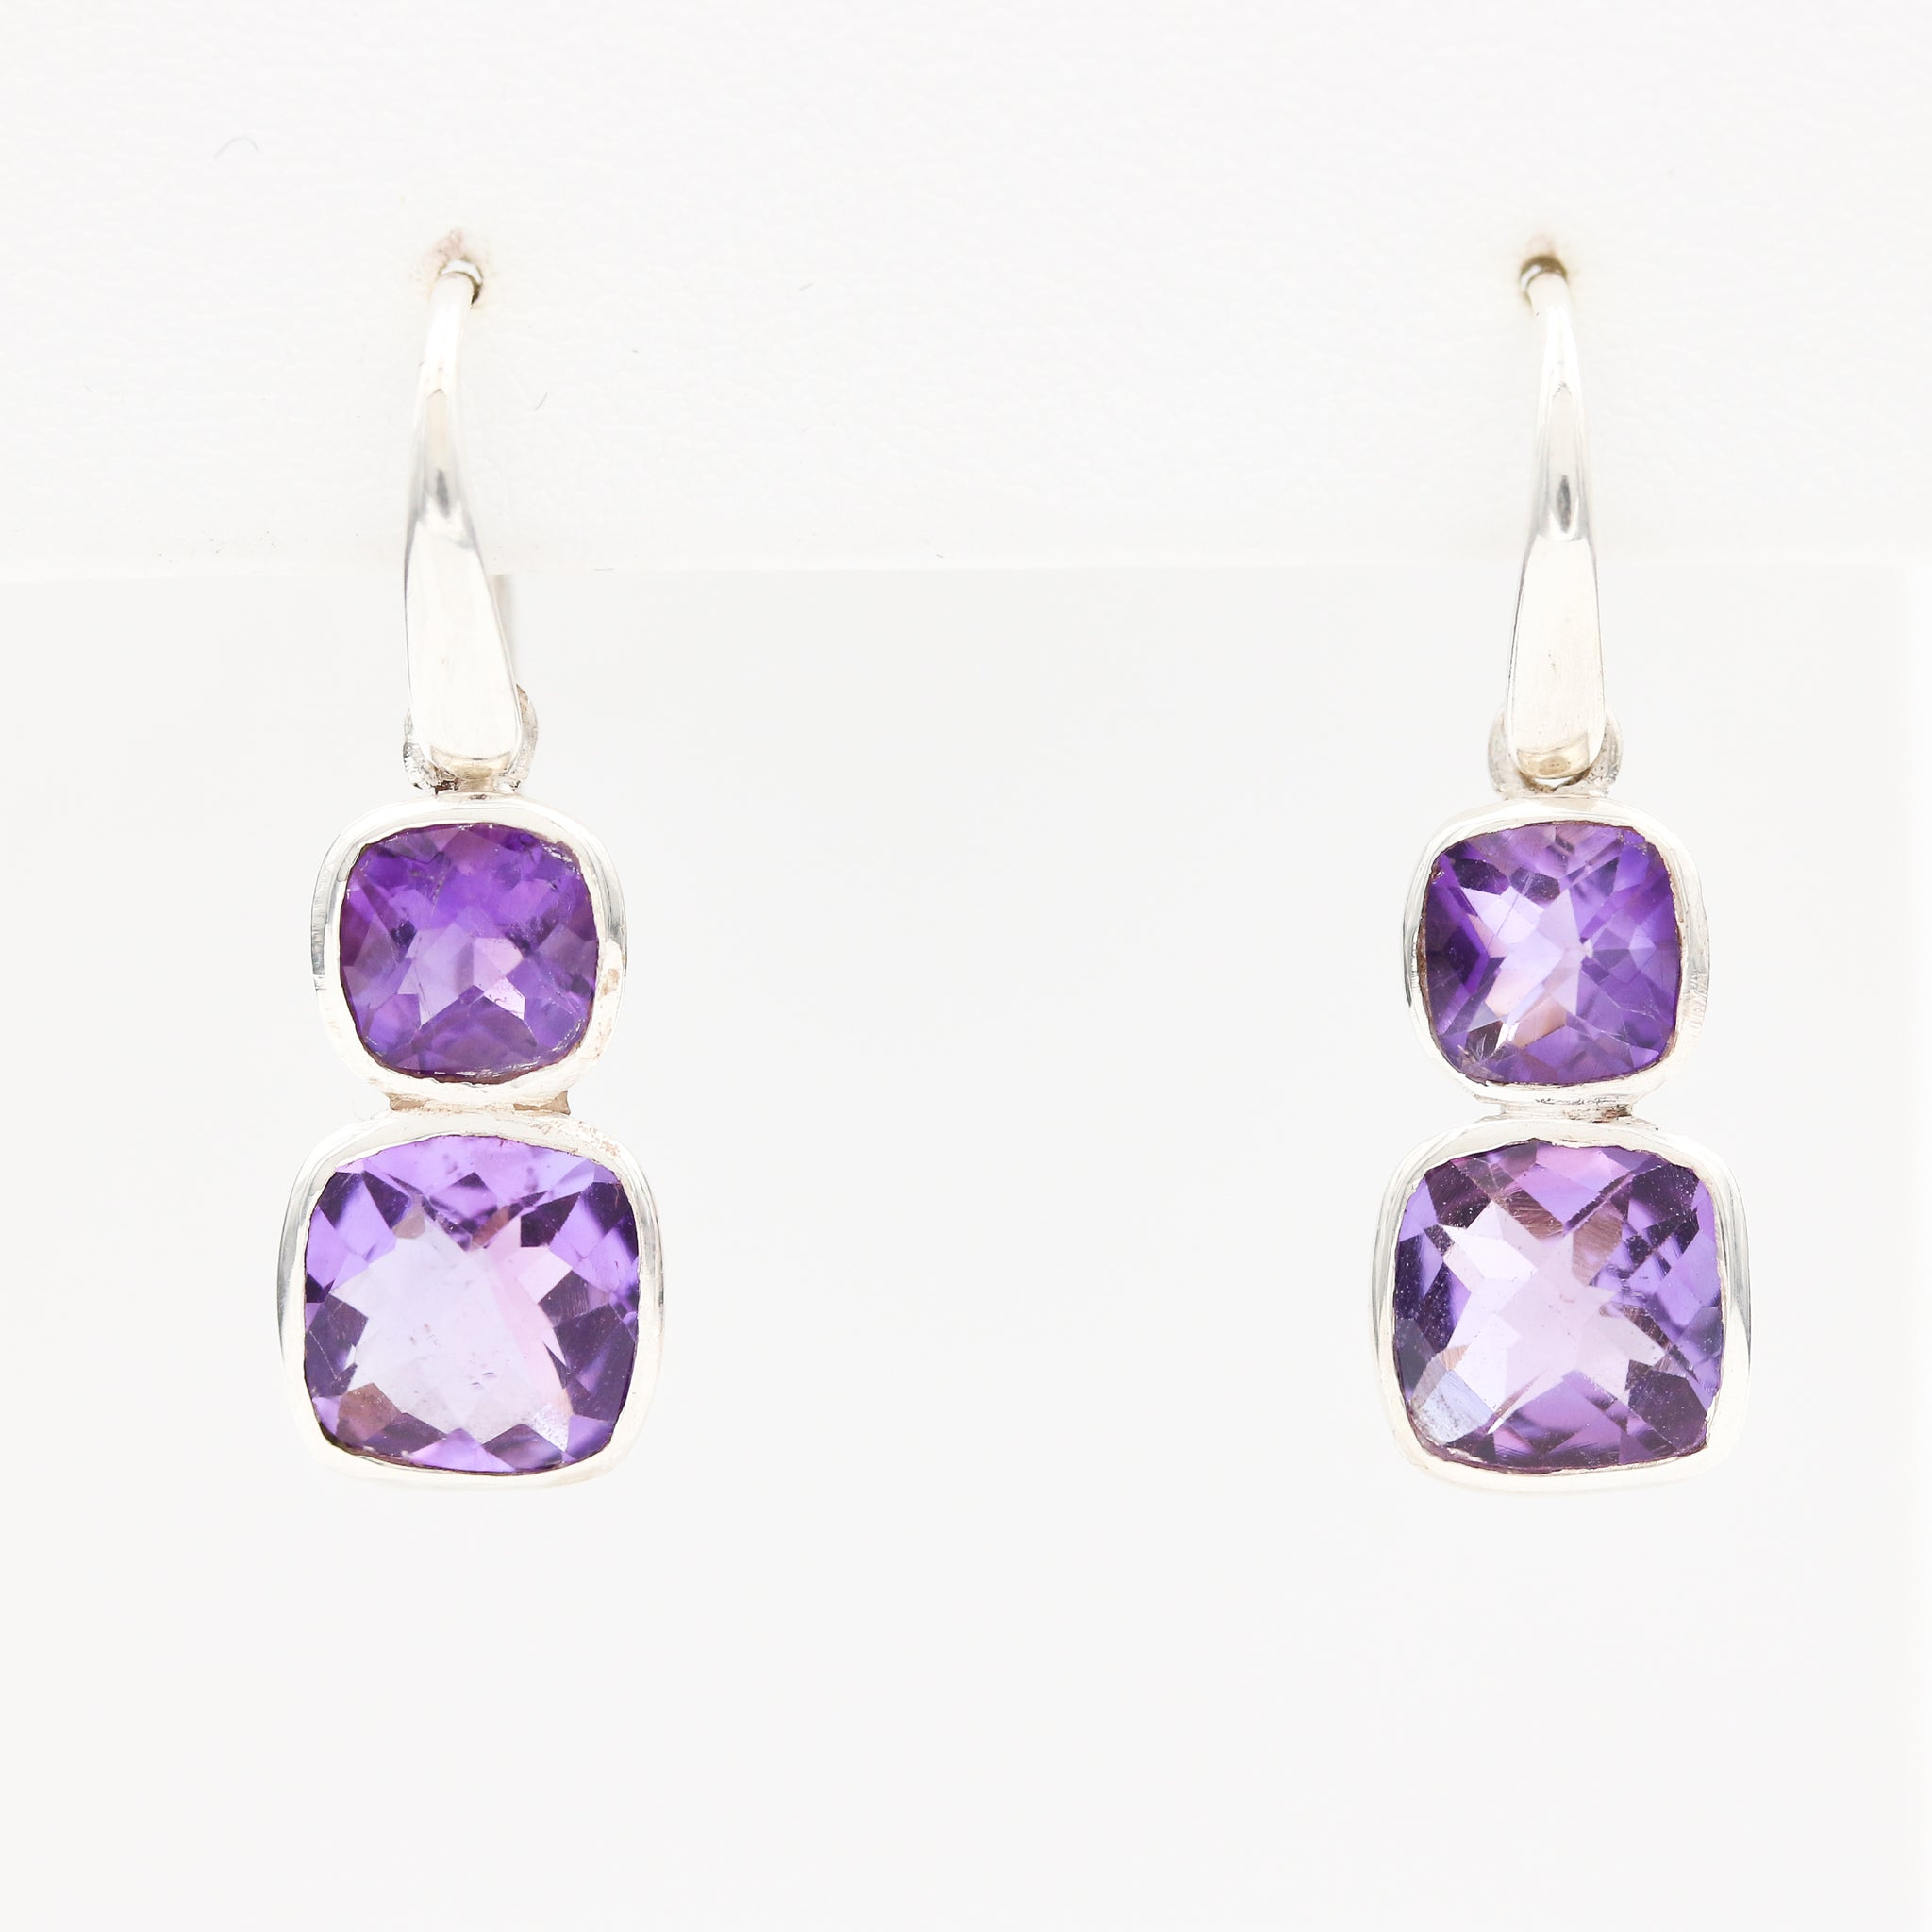 *SOLD* Amethyst in Sterling Silver Earrings - Sindur